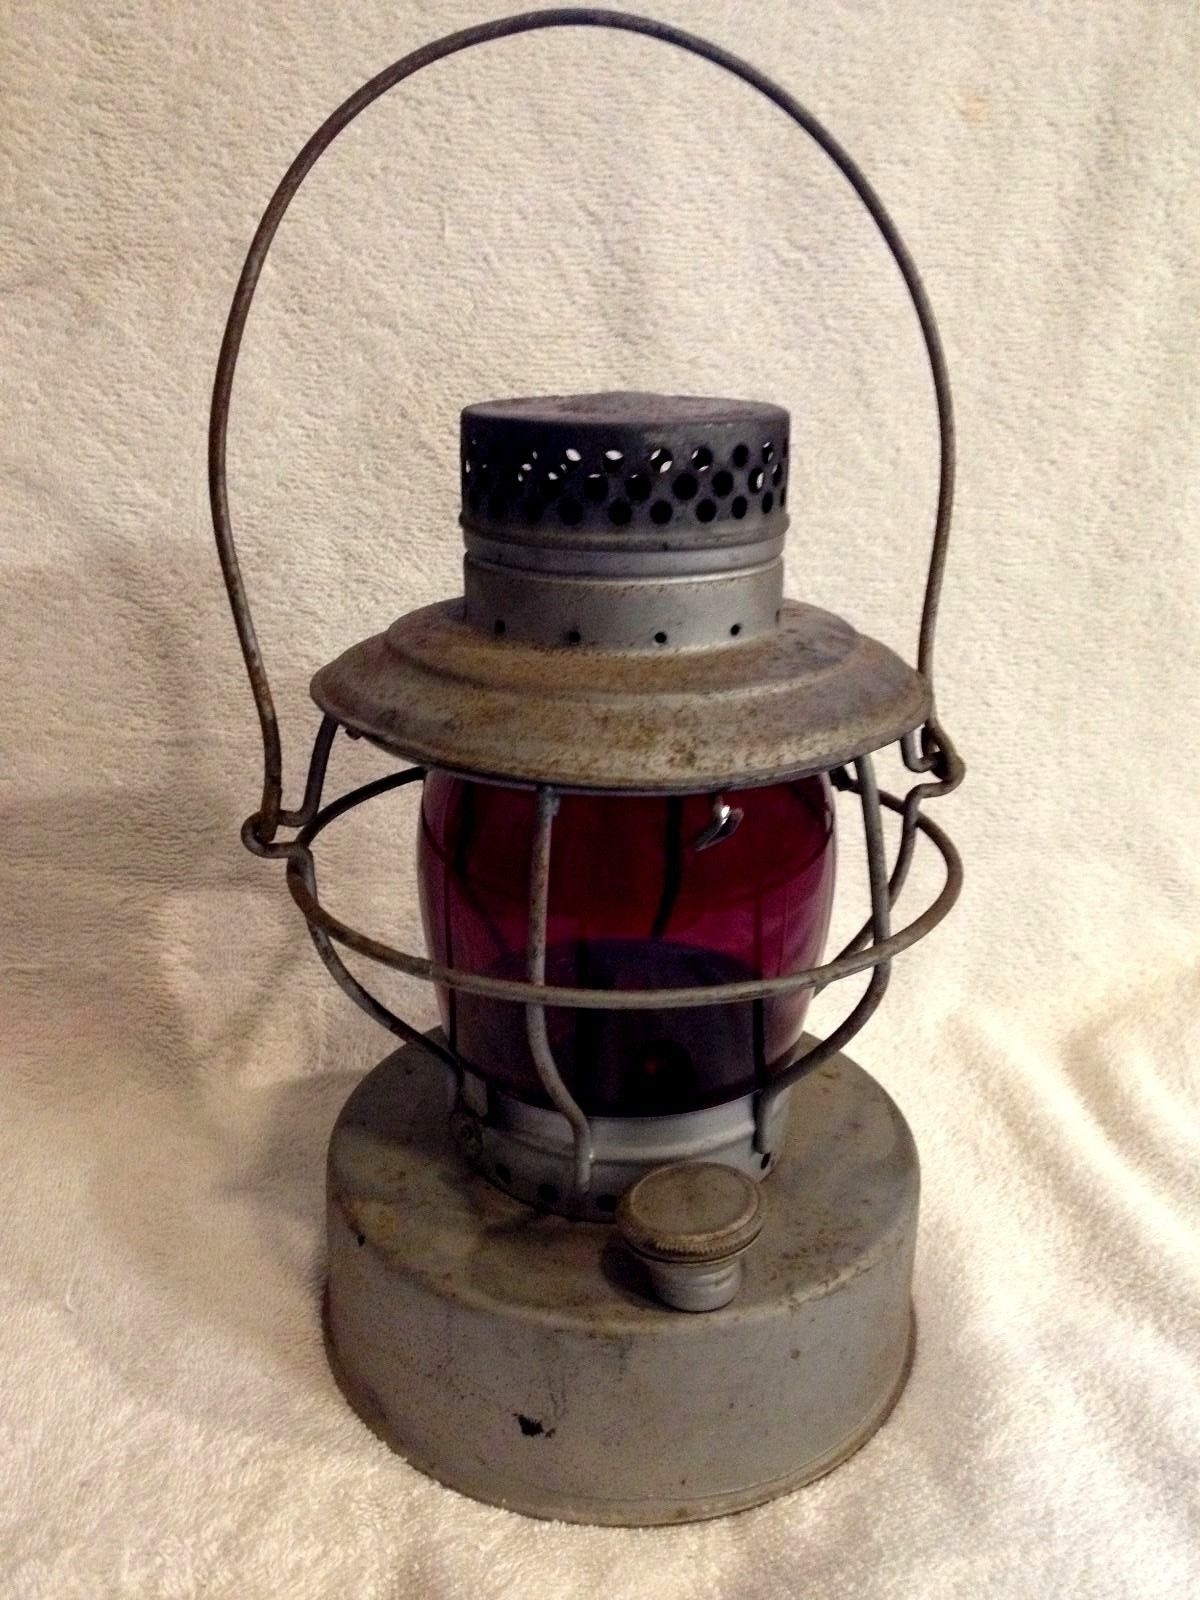 Rr Lamps, Lanterns Throughout Outdoor Railroad Lanterns (Gallery 2 of 20)